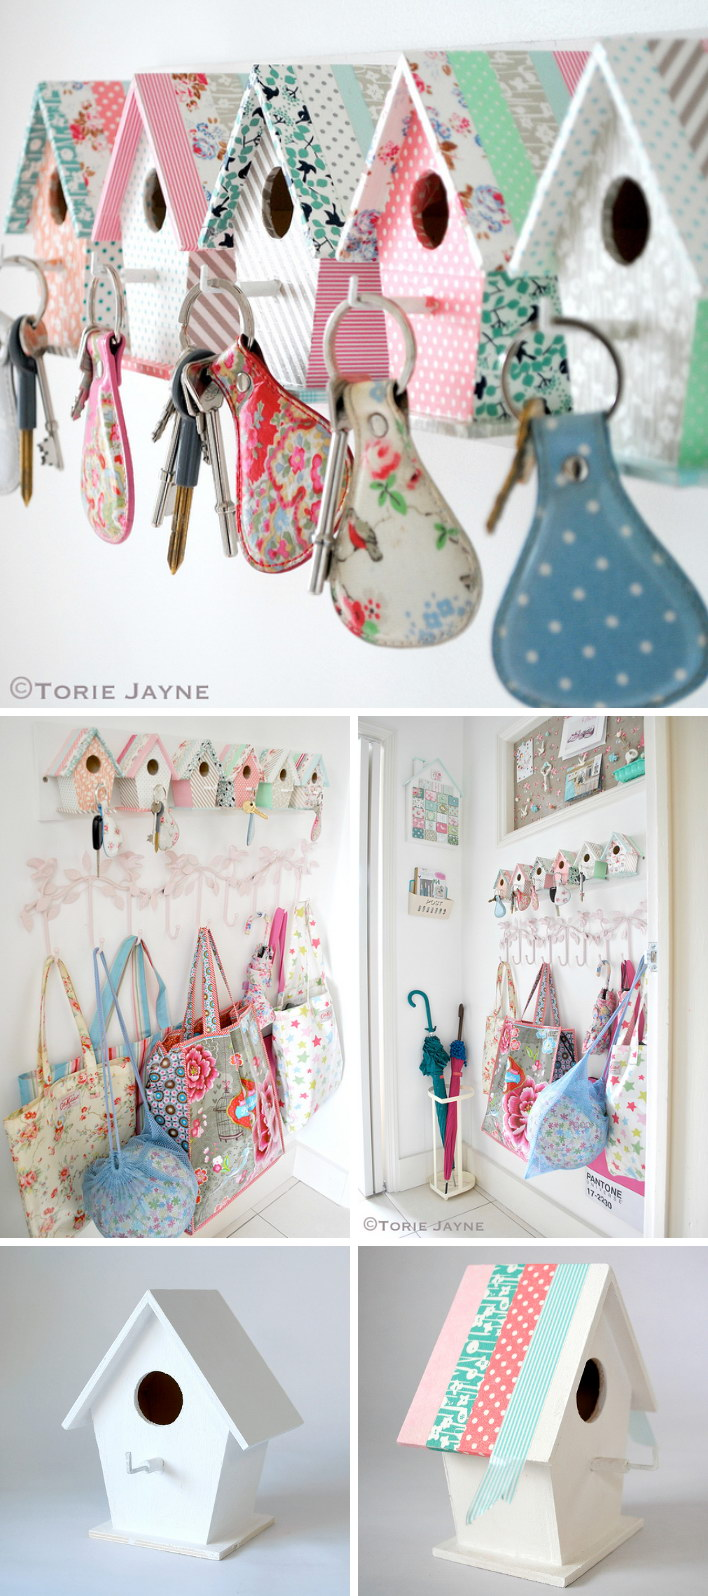 Teen bedroom diy decorating ideas - Diy Easy Bird House Key Hooks